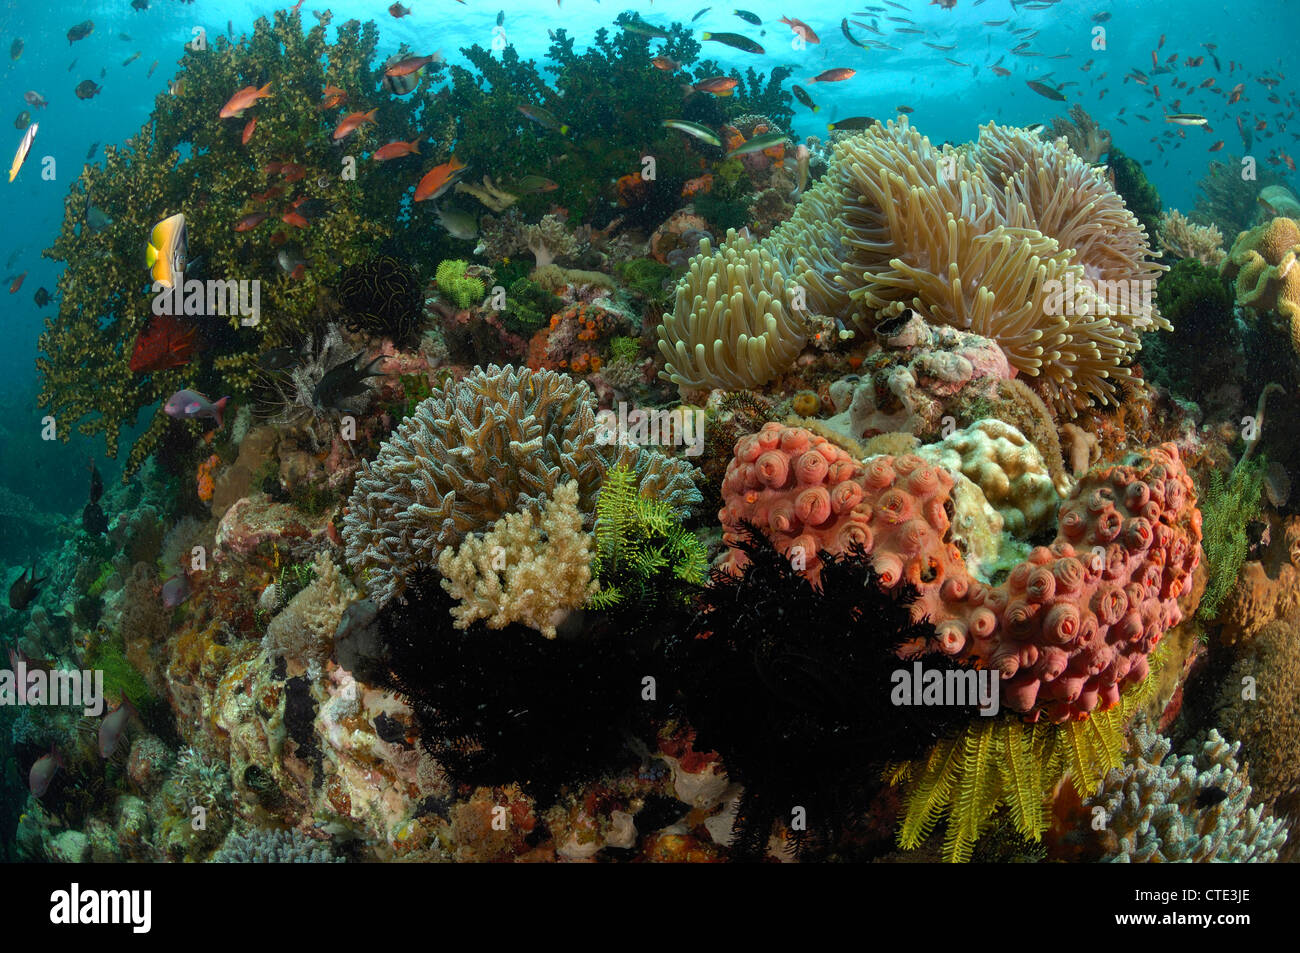 Colorful Coral Reef, Cannibal Rock, Rinca, Indonesia - Stock Image